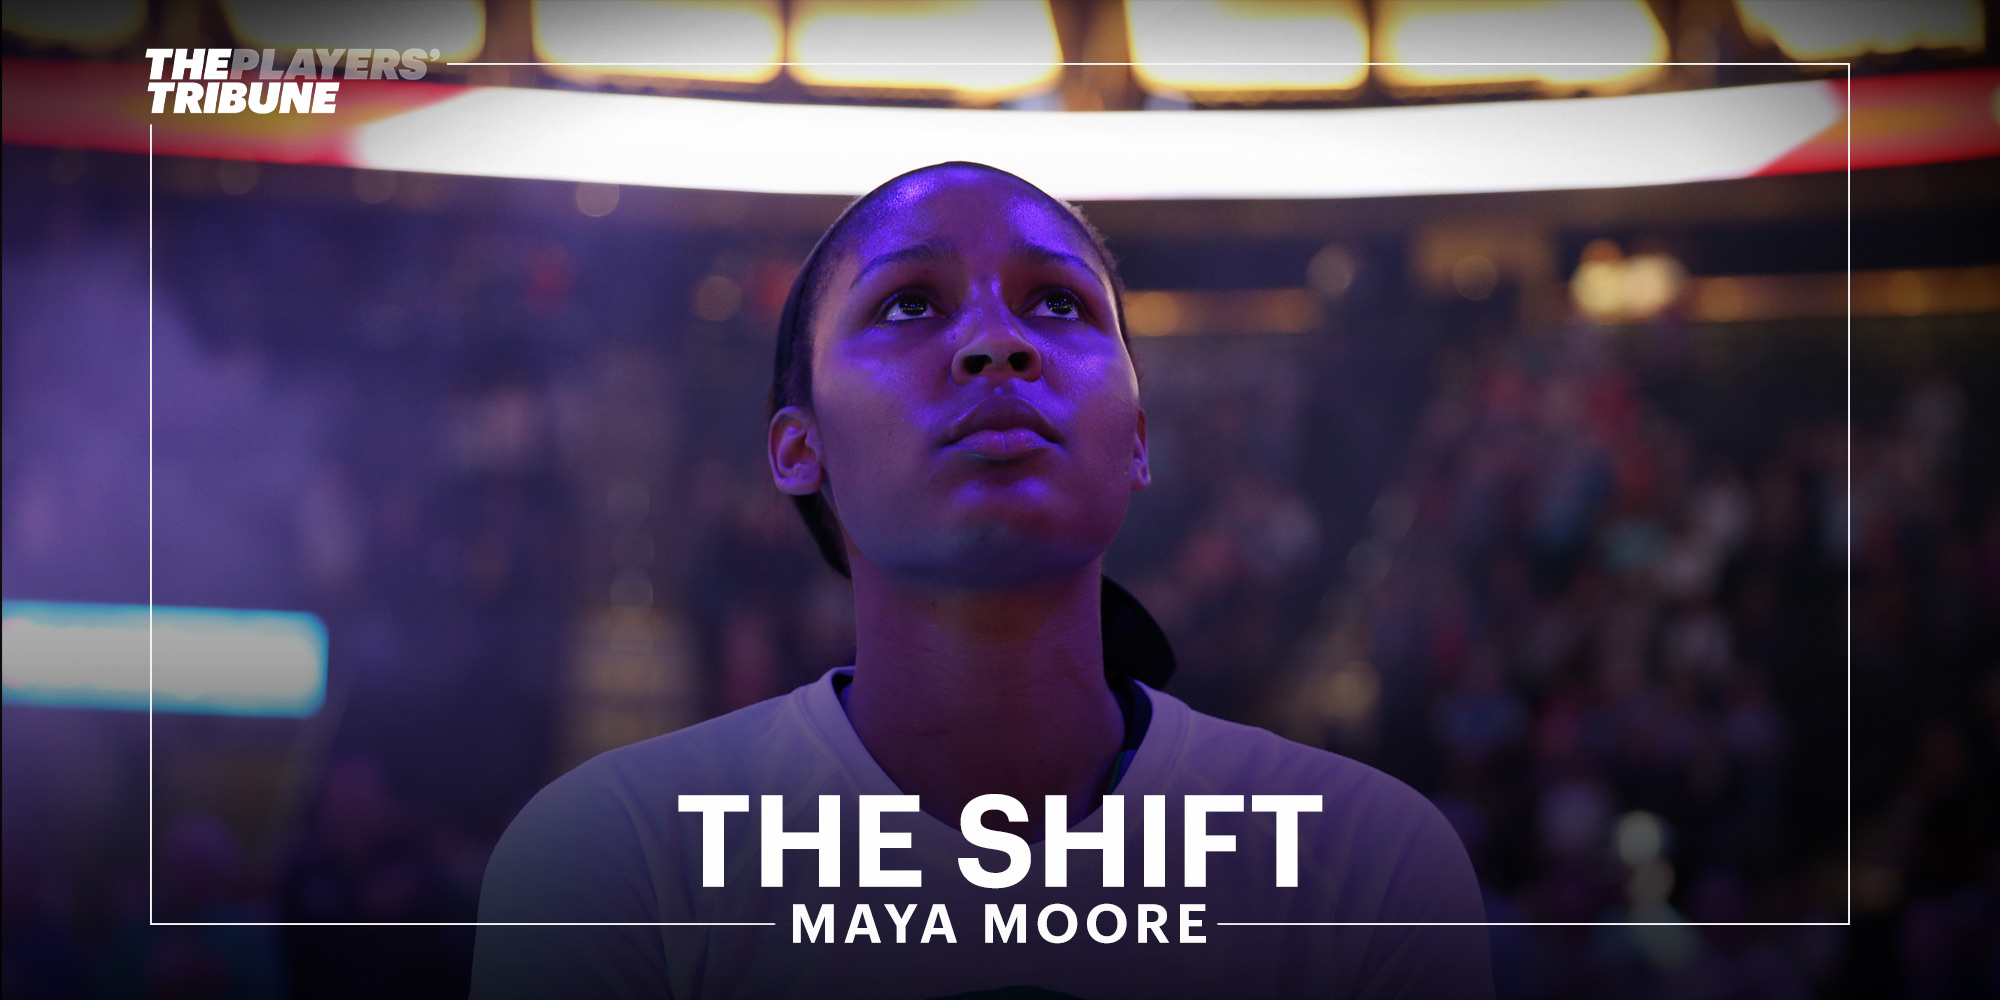 Following Maya Moore's lead, WNBA Players Are Willing To Risk It All